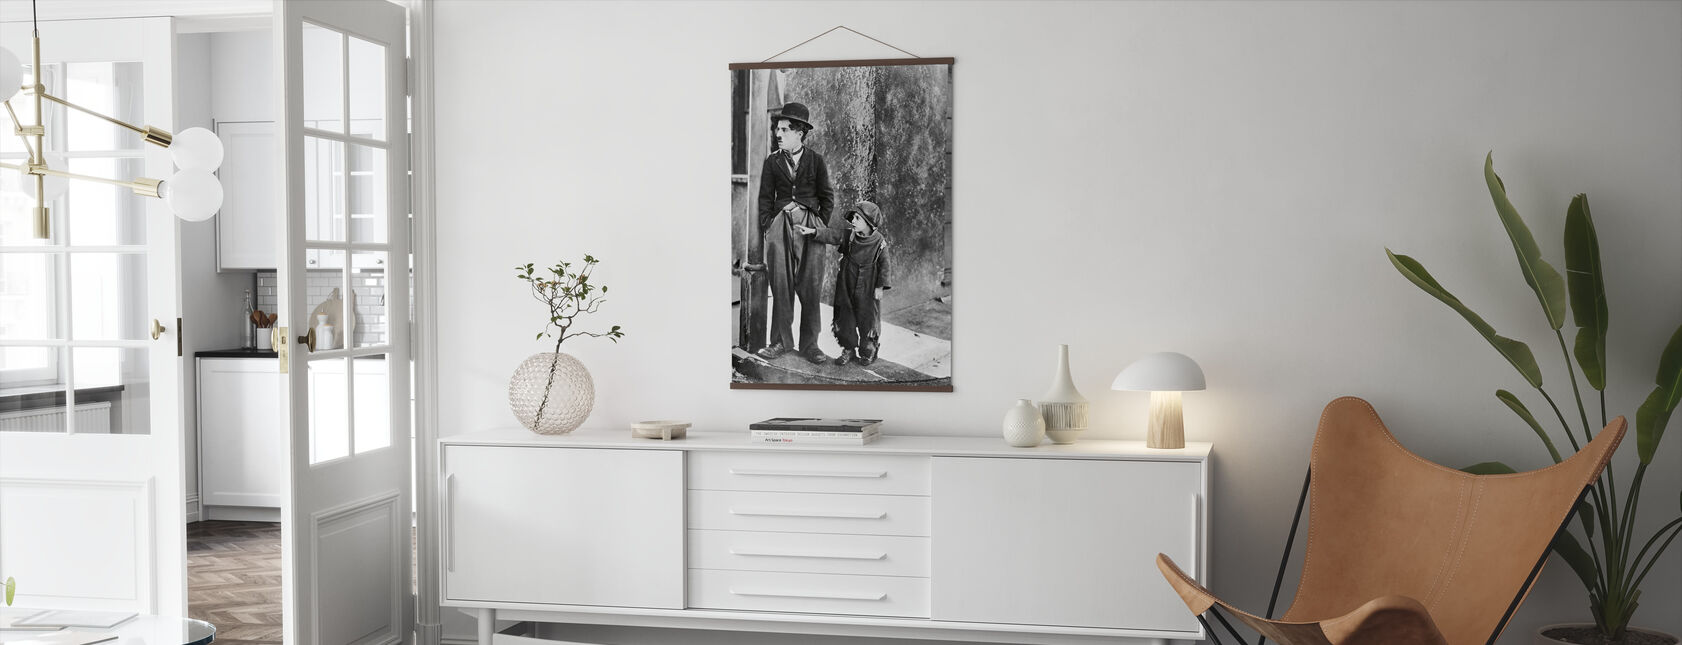 Charlie Chaplin and Jackie Coogan in the Kid - Poster - Living Room